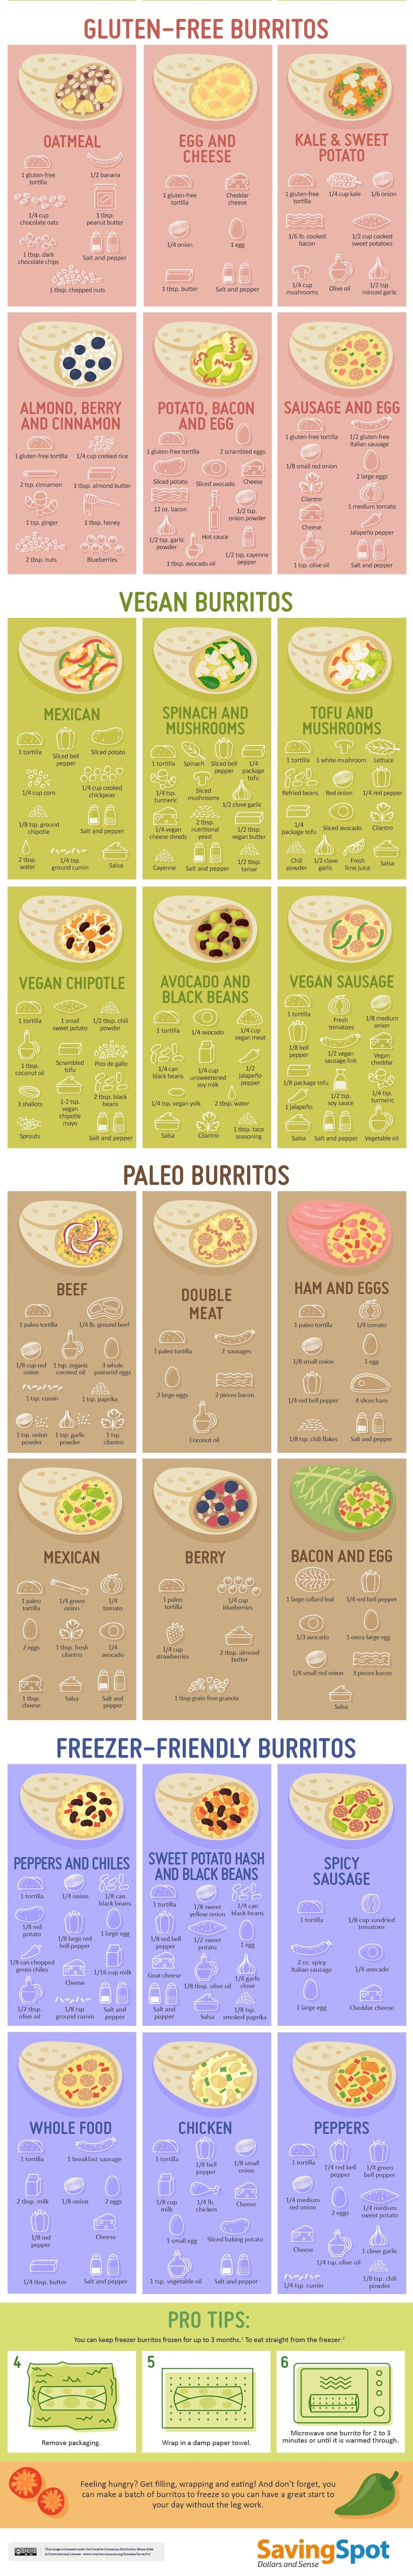 The-ultimate-breakfast-burrito-cheat-sheet-1